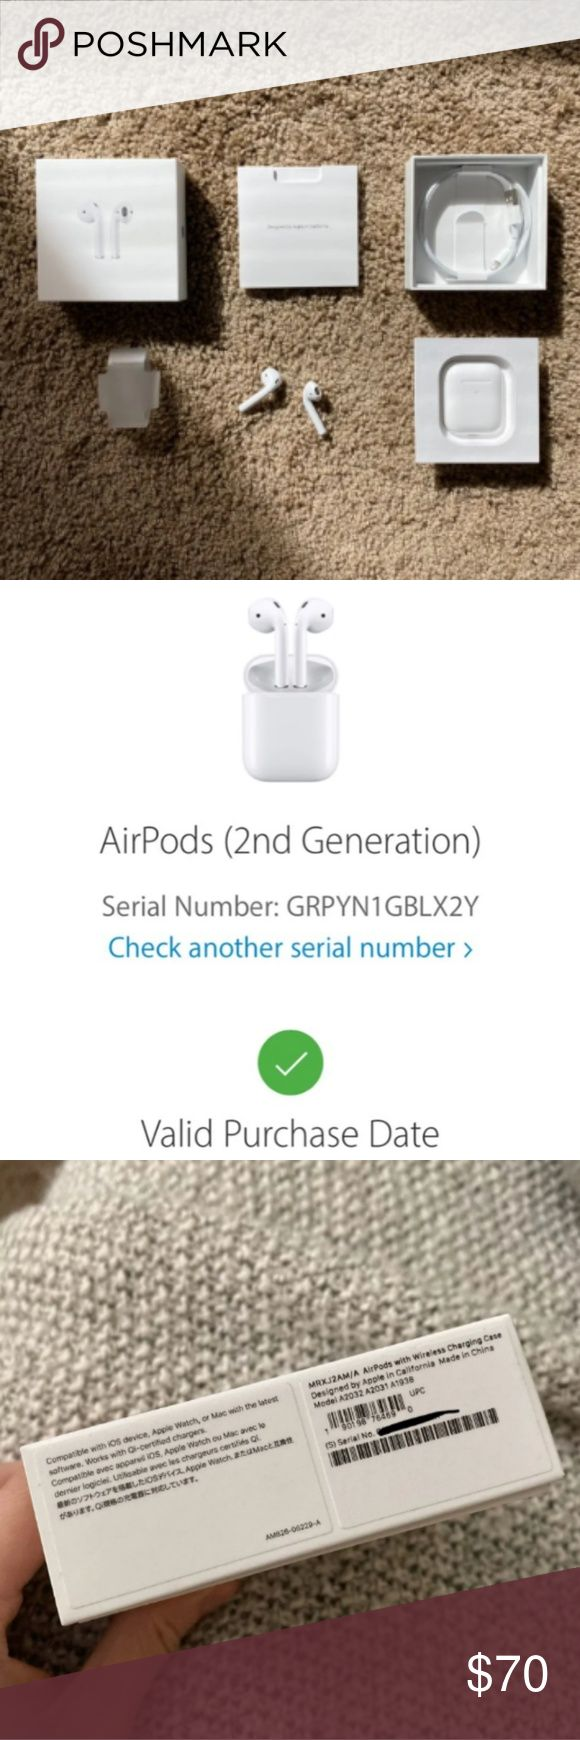 Airpods 2 Text Me 281 624 26 87 If Interested Please These Are Apple Airpods They Re 2nd Gen Phone Case Accessories Apple Accessories I Am Awesome